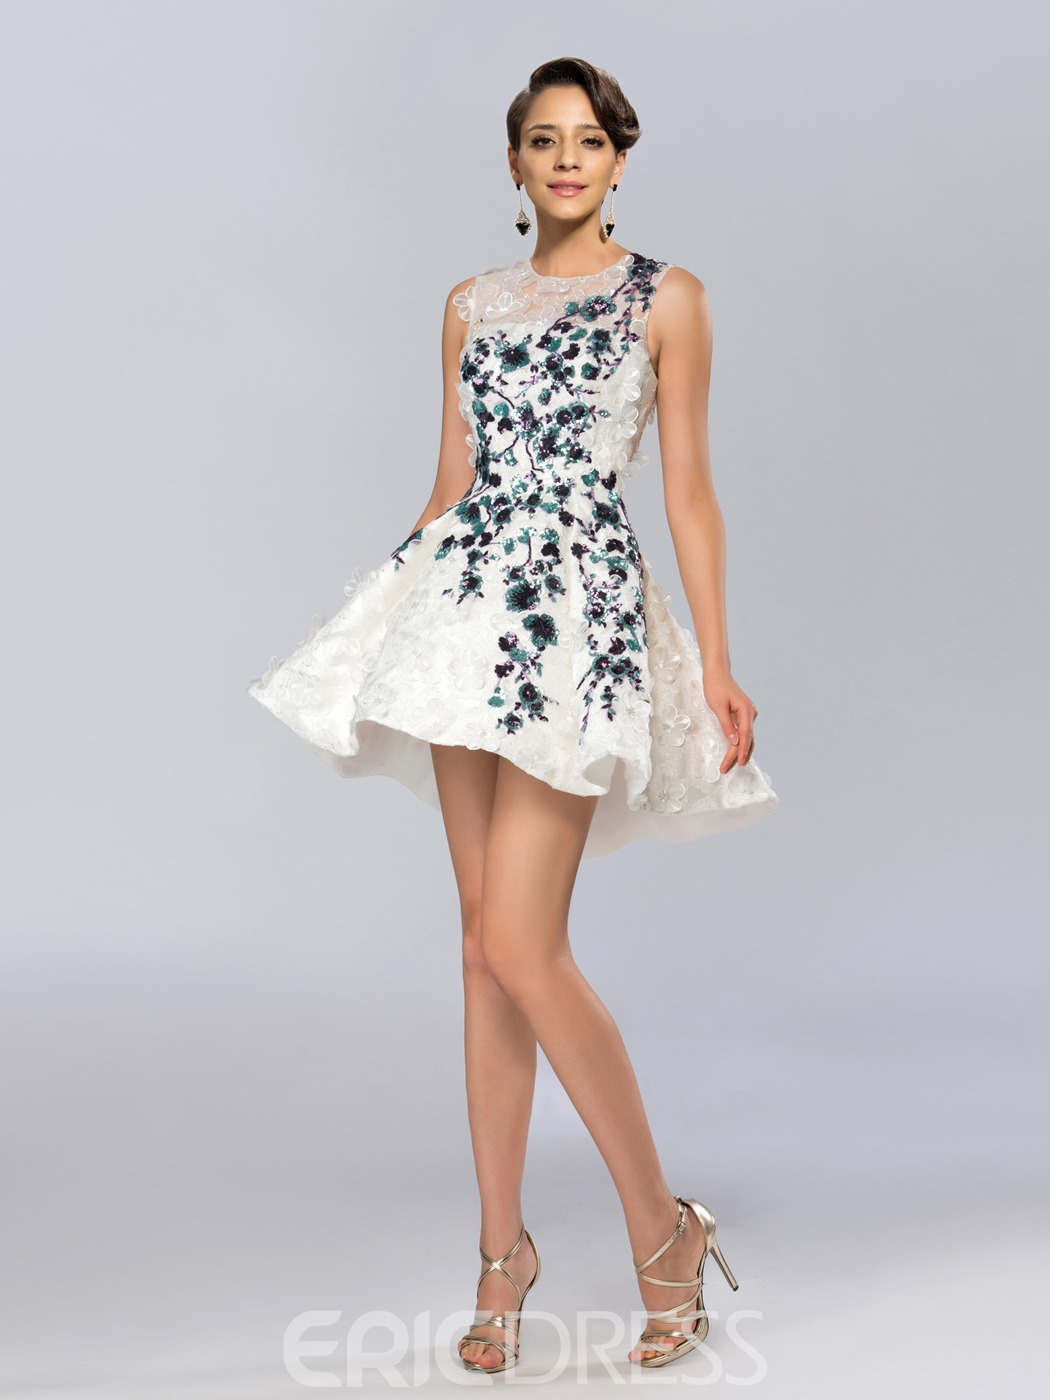 Applique Cocktail Dress